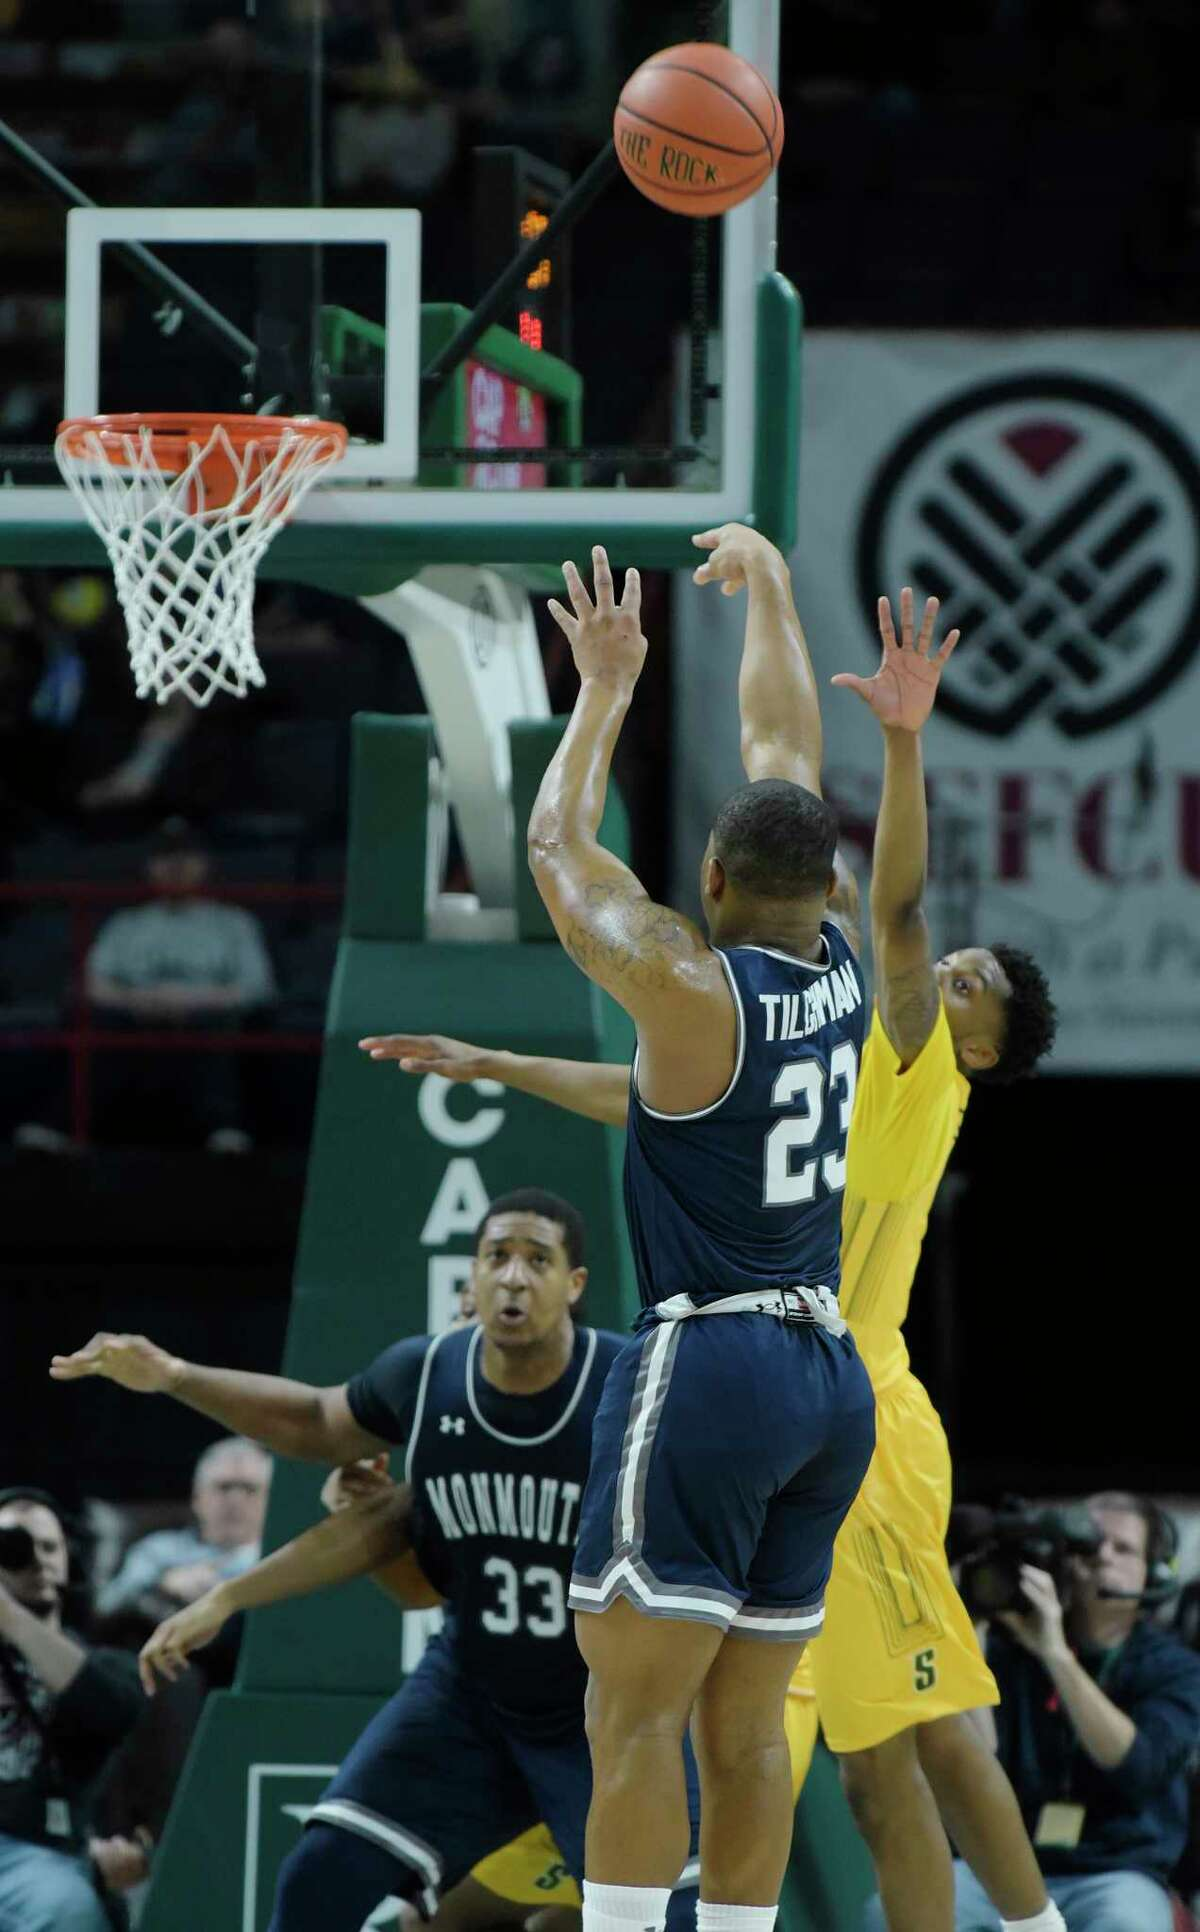 Diago Quinn of Monmouth puts up a shot as Kadeem Smithen of Siena tries to block the shot during their game on Sunday, Feb. 18, 2018, in Albany, N.Y. (Paul Buckowski/Times Union)